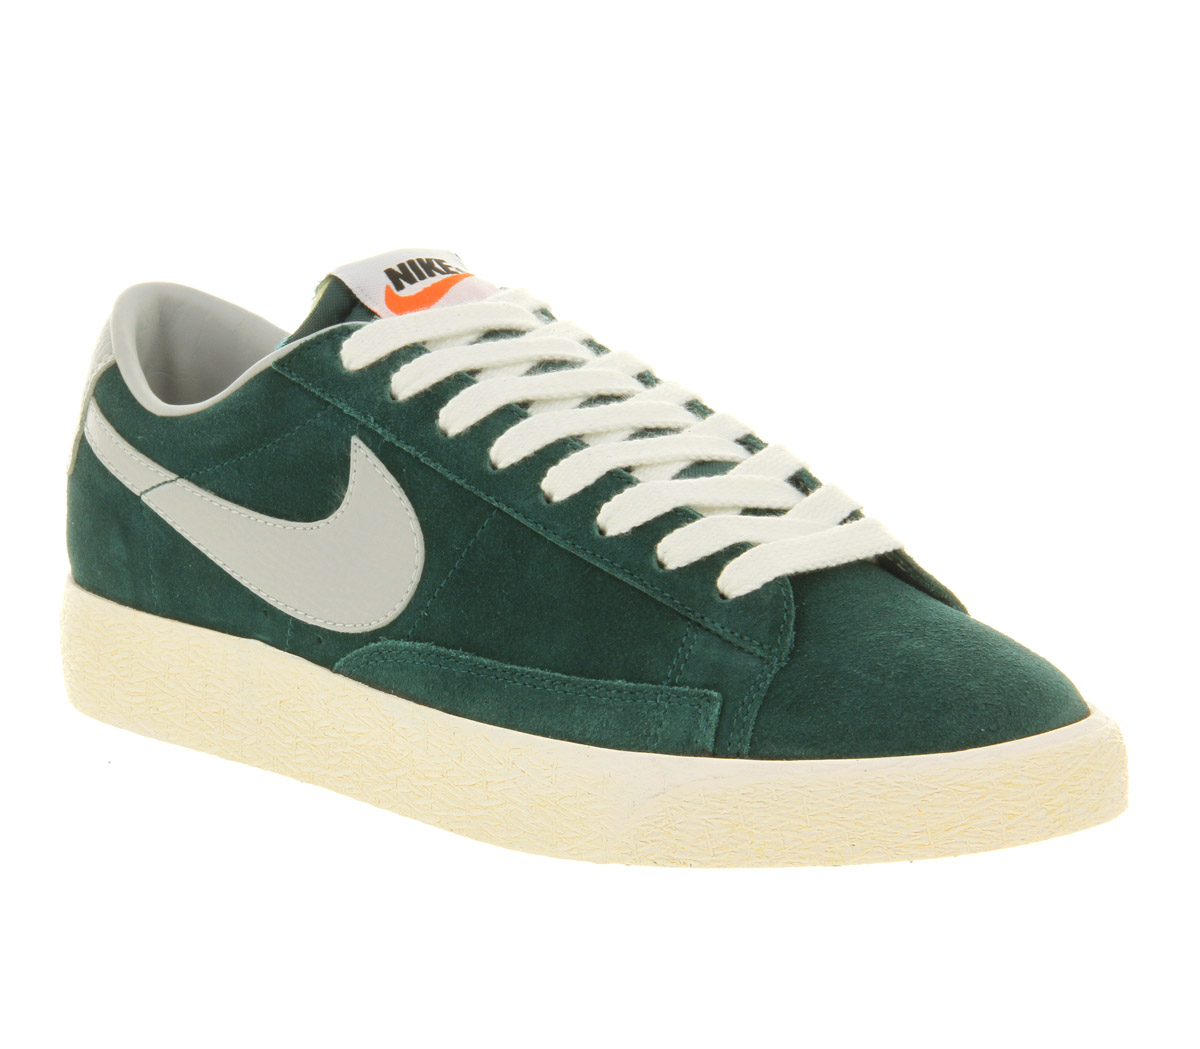 nike blazer low vintage dark atomic strata grey in green. Black Bedroom Furniture Sets. Home Design Ideas